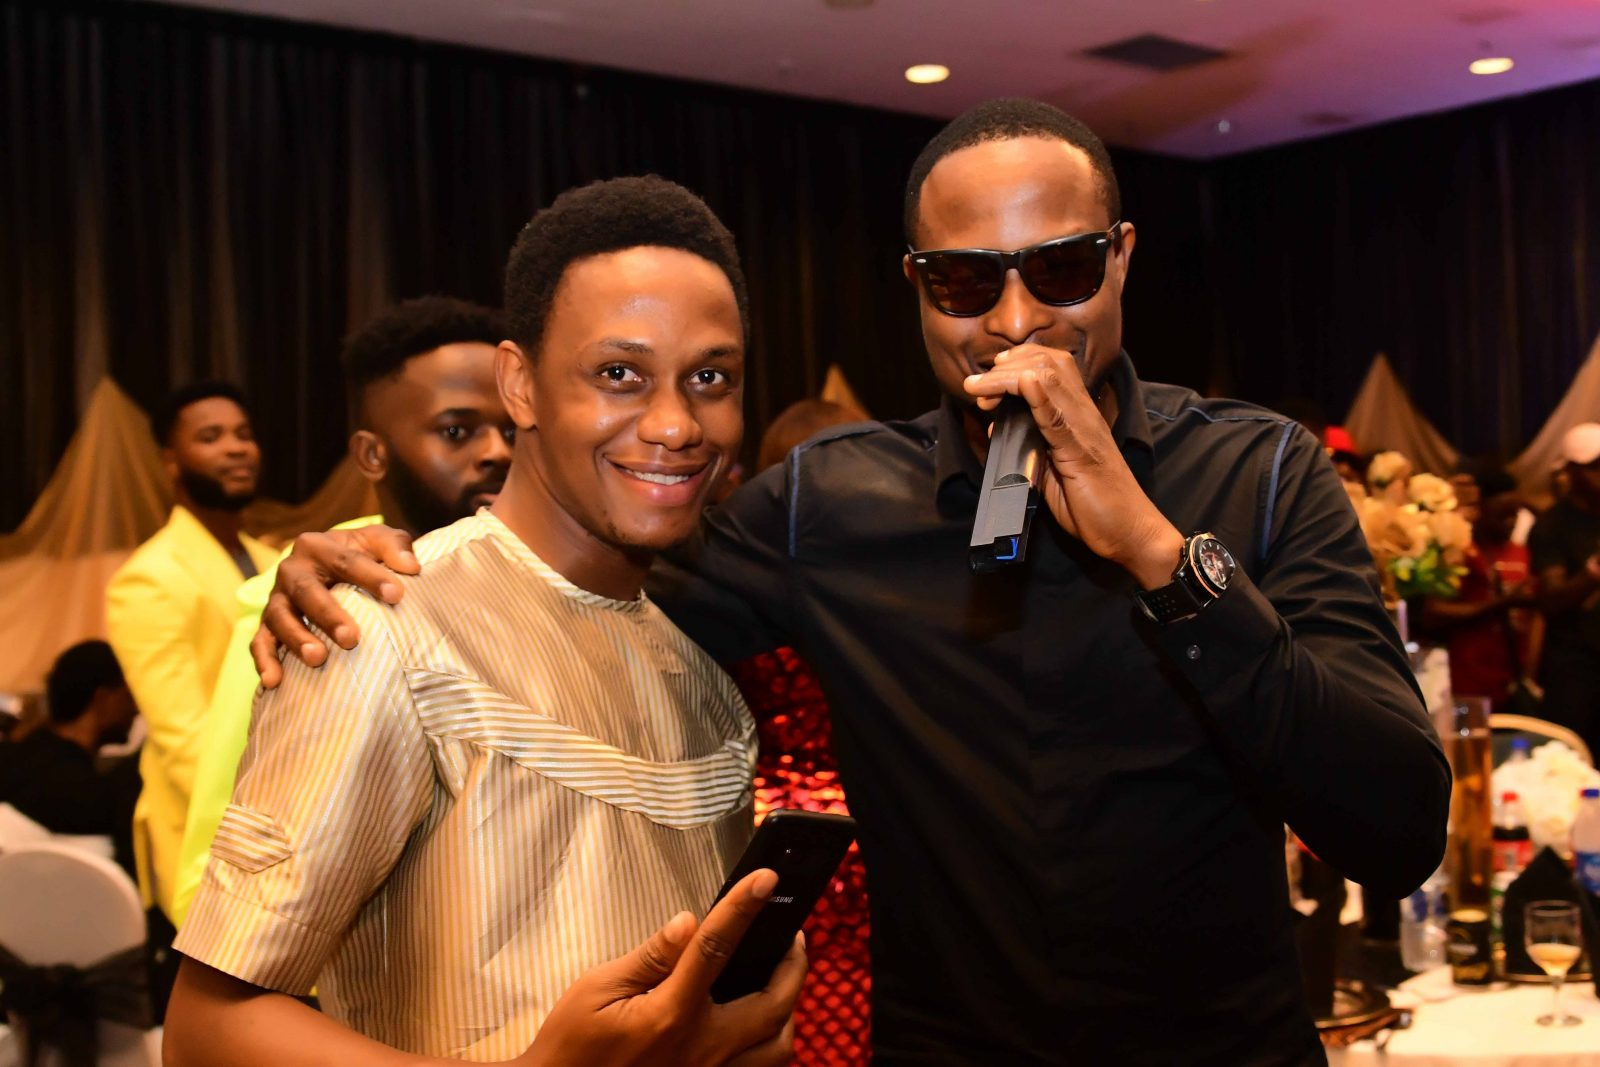 Abel Wealth – Africa's Young CEO Shares Fun Moments with Top Celebrities